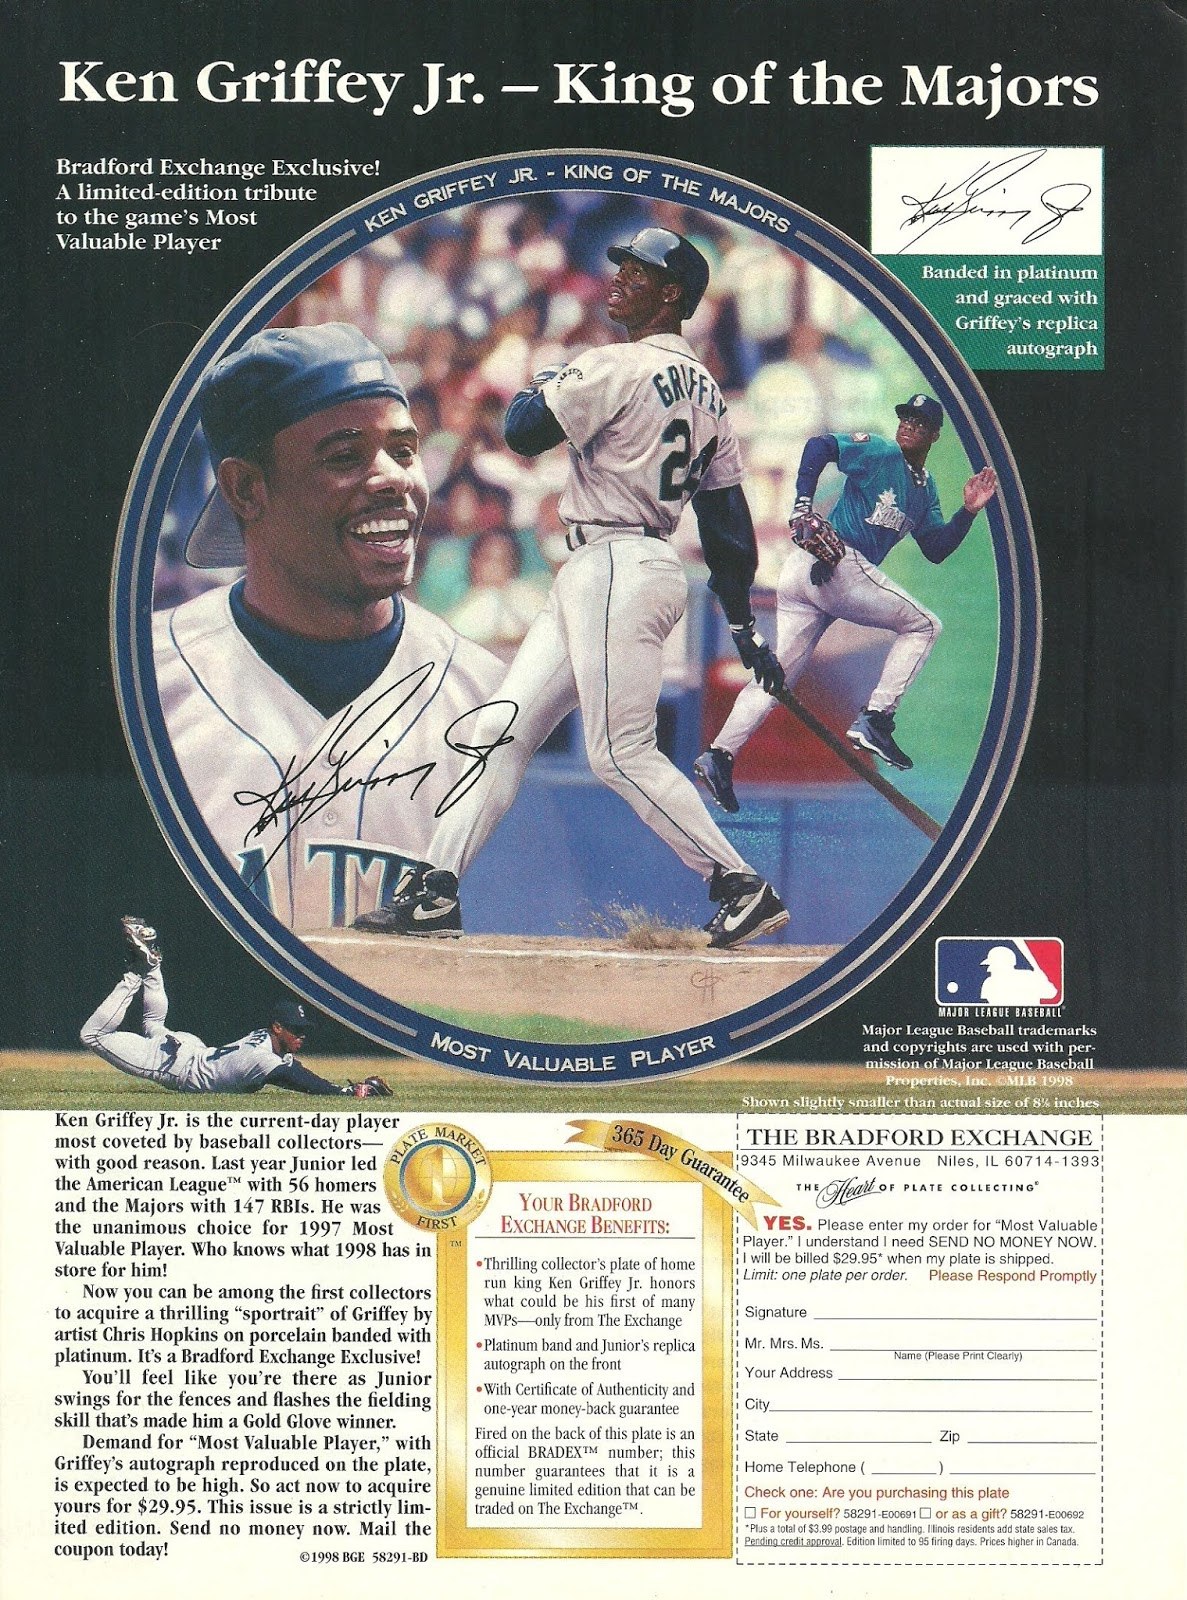 a4b14de3ed Keeping with the Griffey theme of the magazine, page 13 of the November 1998  issue of Beckett Baseball Card Monthly magazine features a full page ad for  a ...